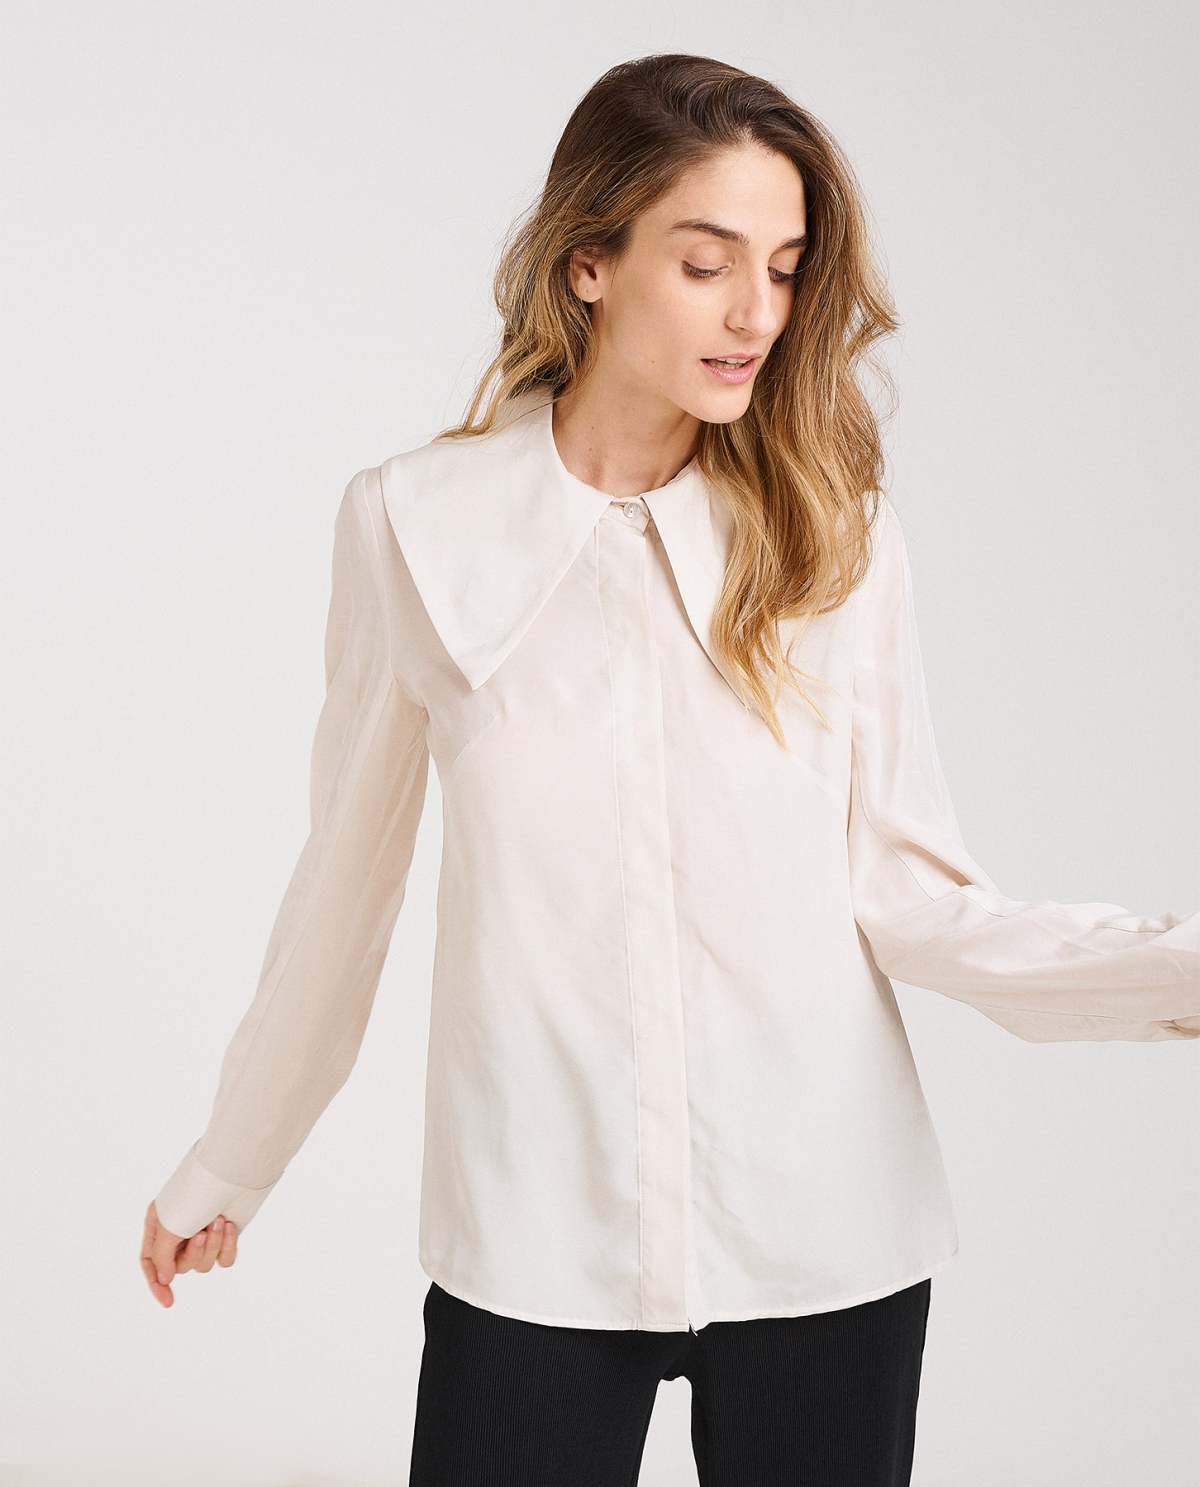 Wide-Collar Shirt